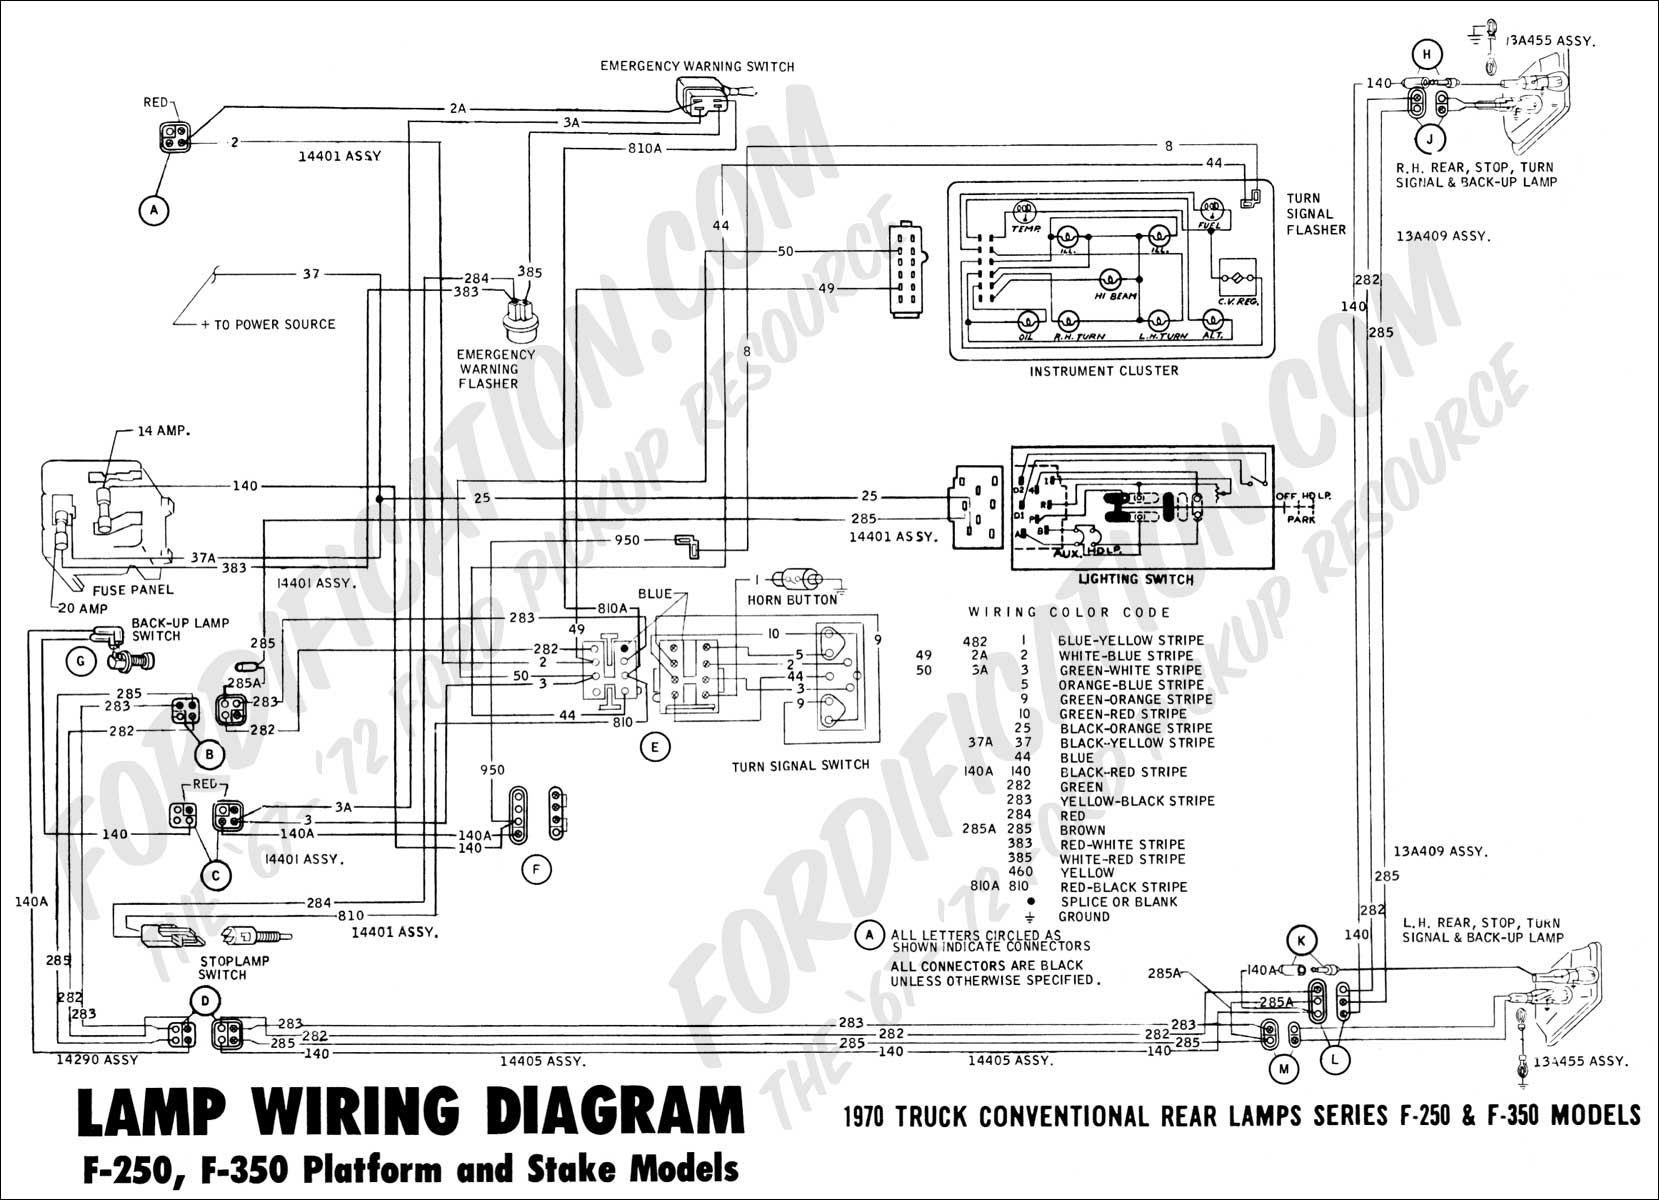 2006 f250 wiring diagram 2006 ford f150 ignition wiring diagram 2006 image 2006 ford f250 wiring diagram wirdig on 2006